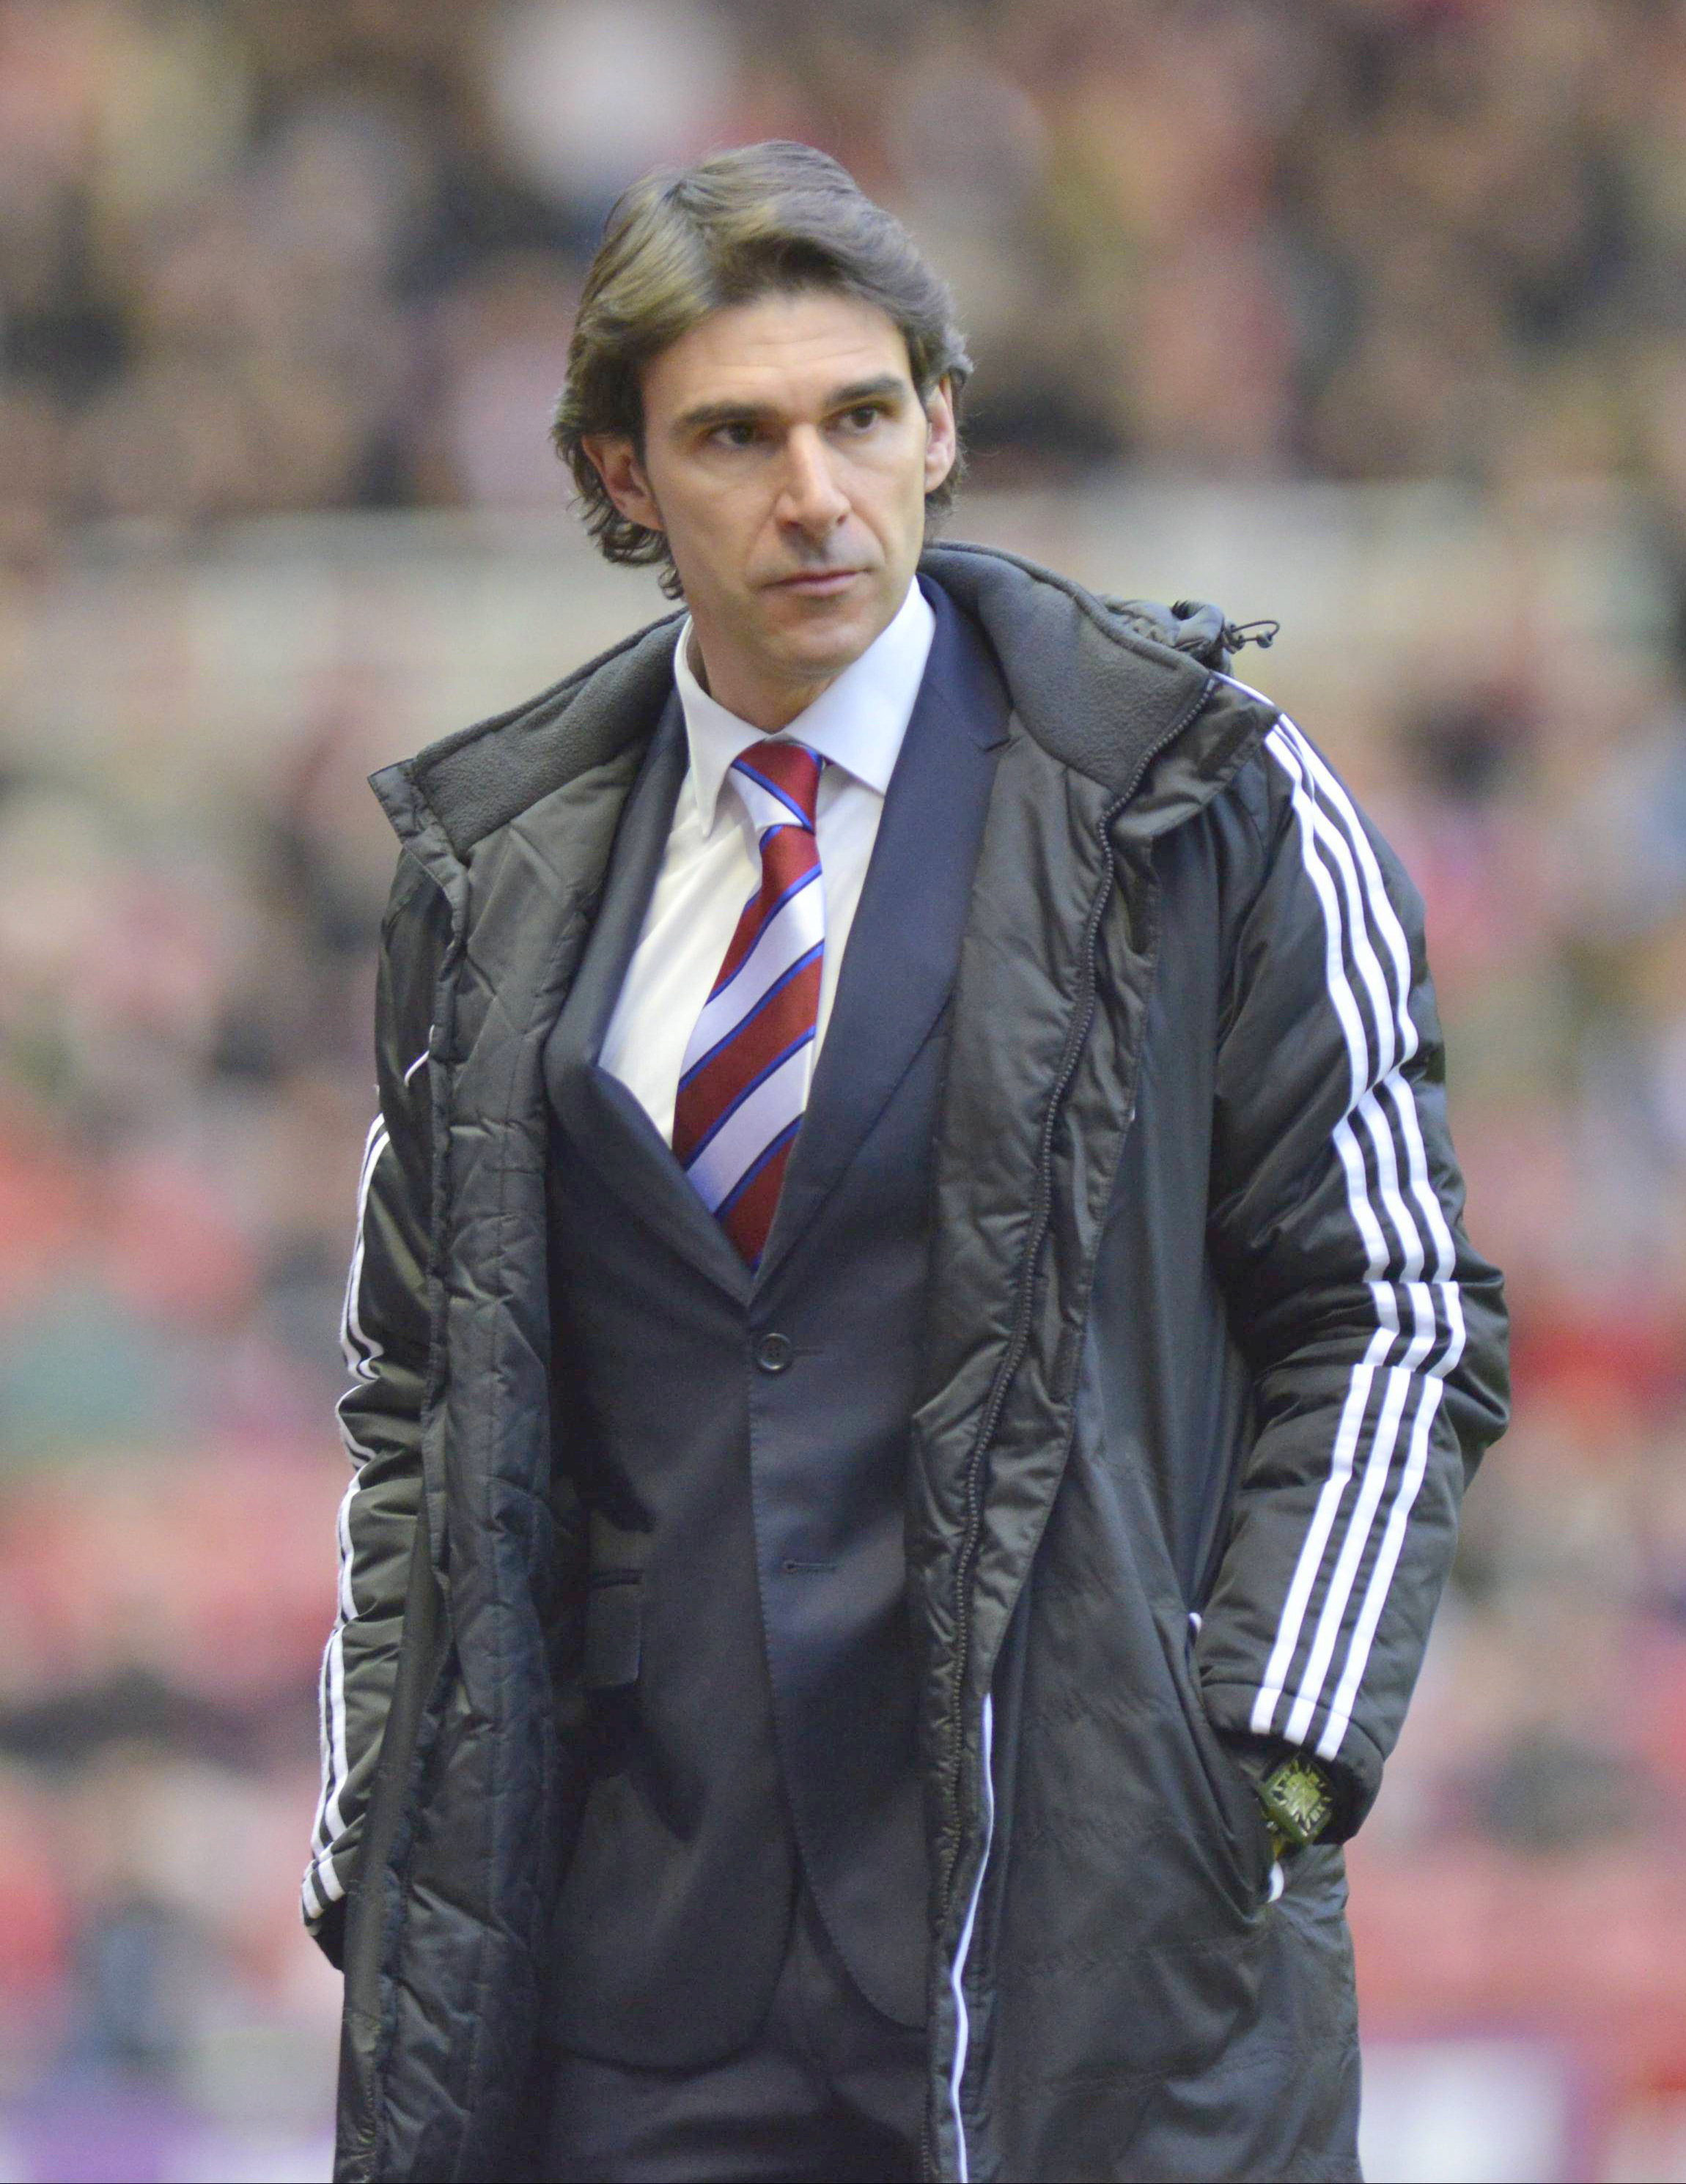 NEW MAN: Aitor Karanka